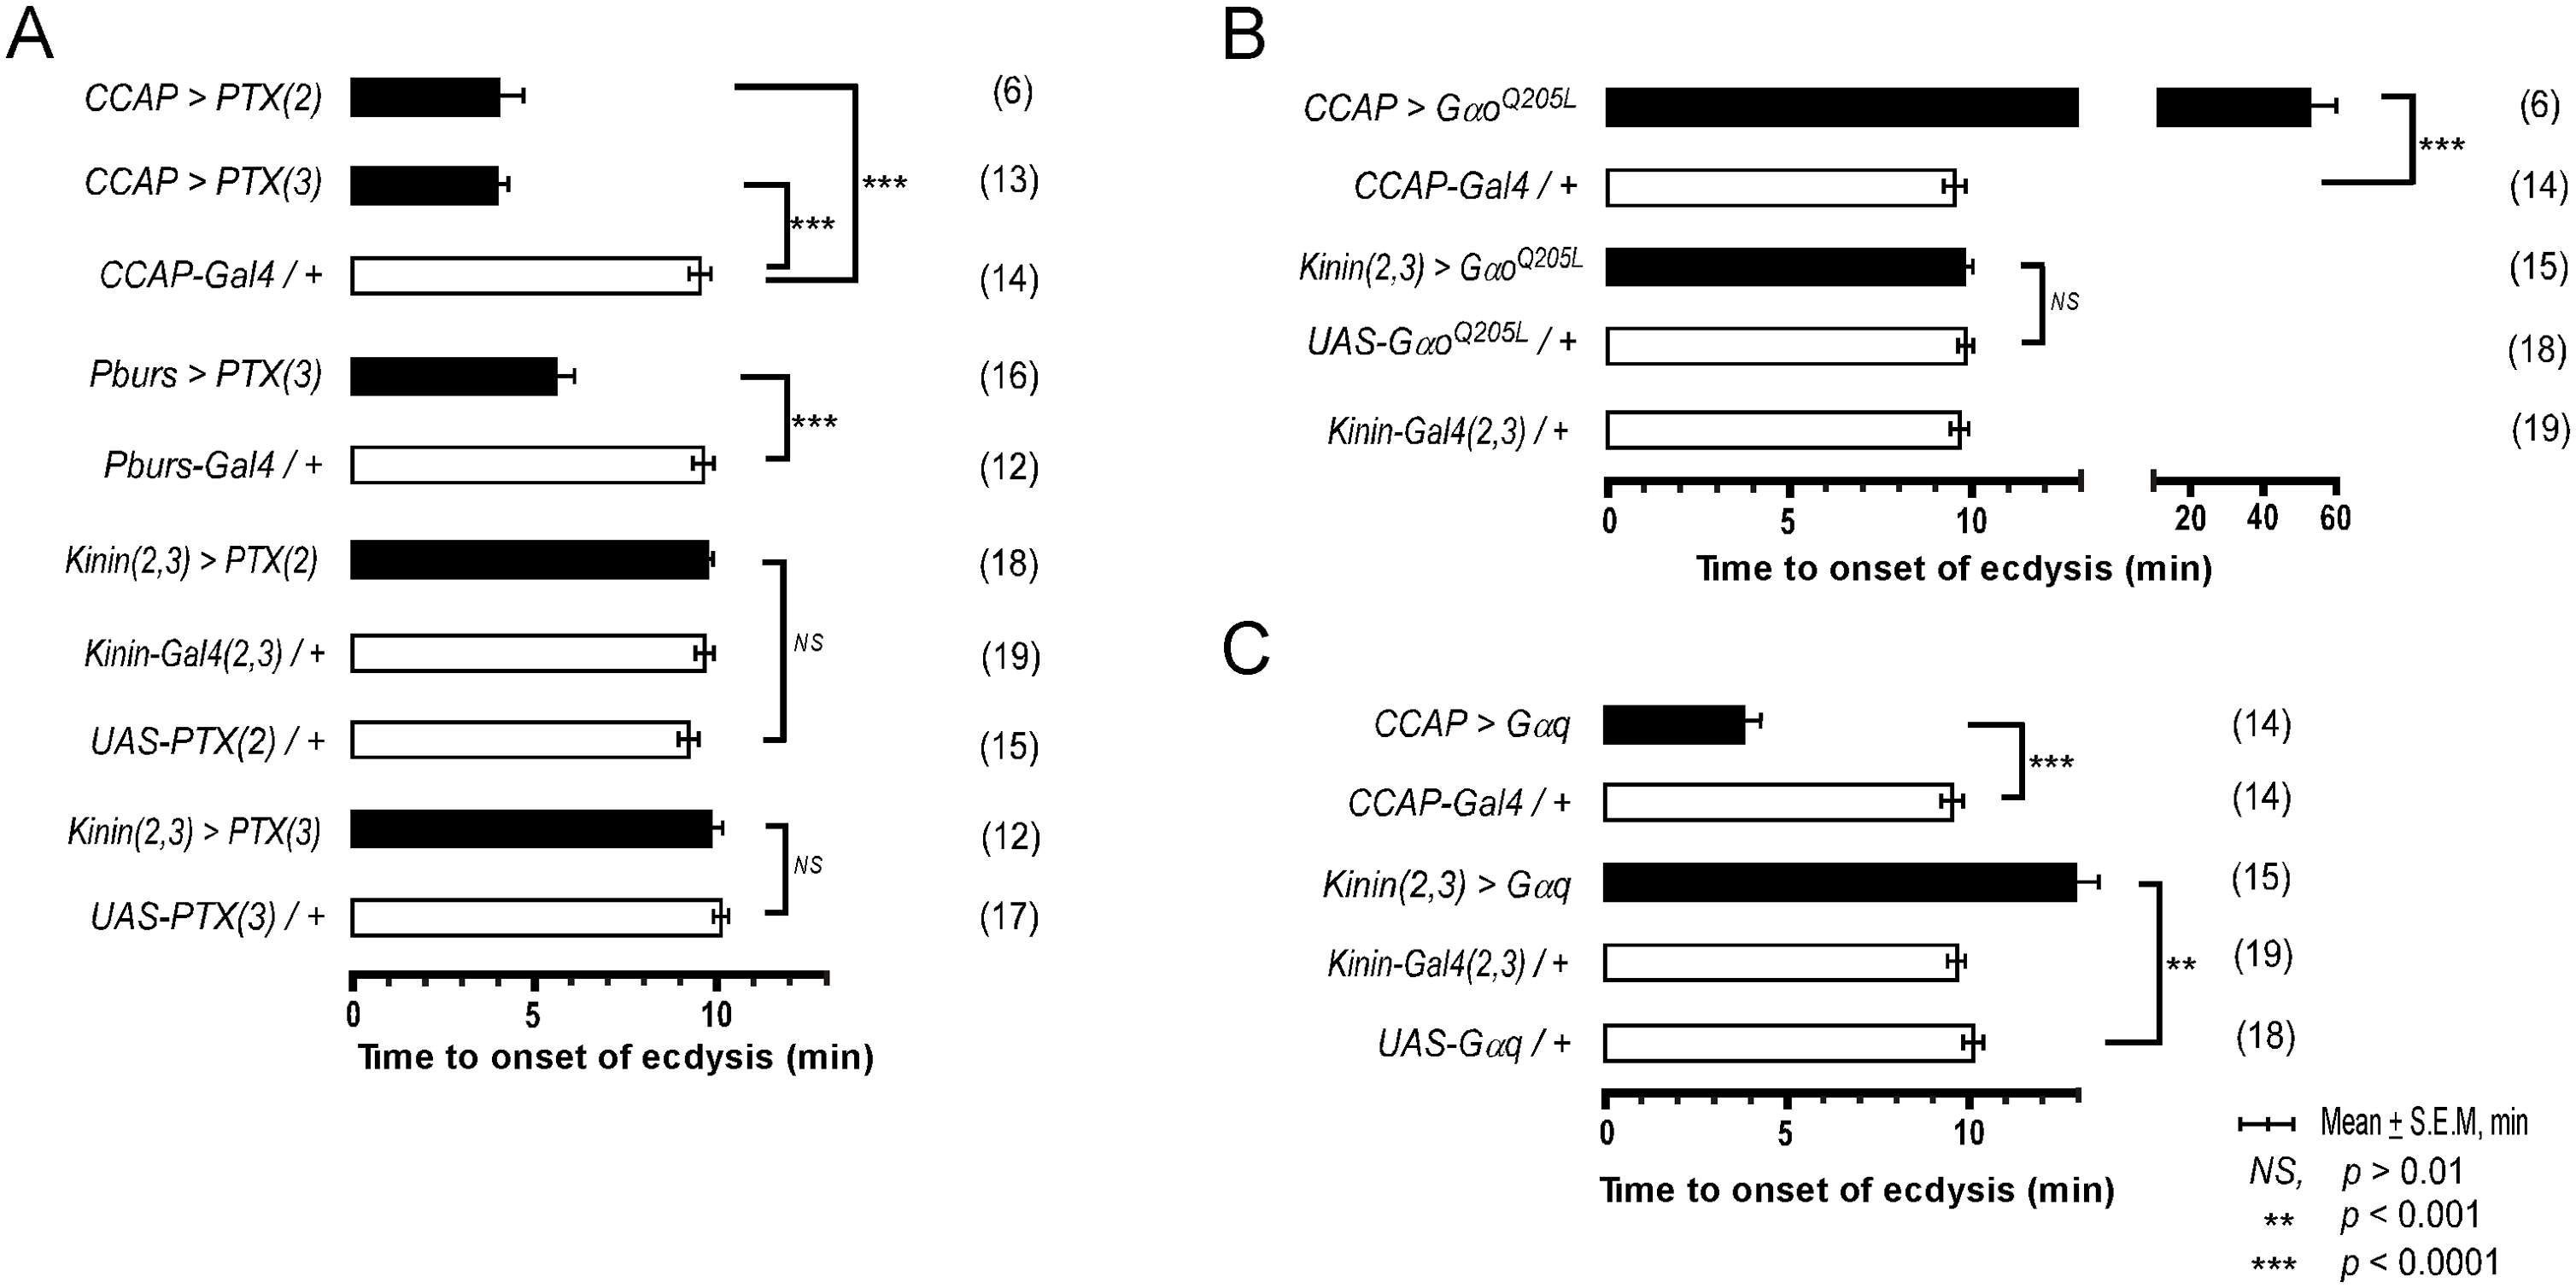 Role of G-Protein-mediated signal transduction in timing of the switch to ecdysis behavior.